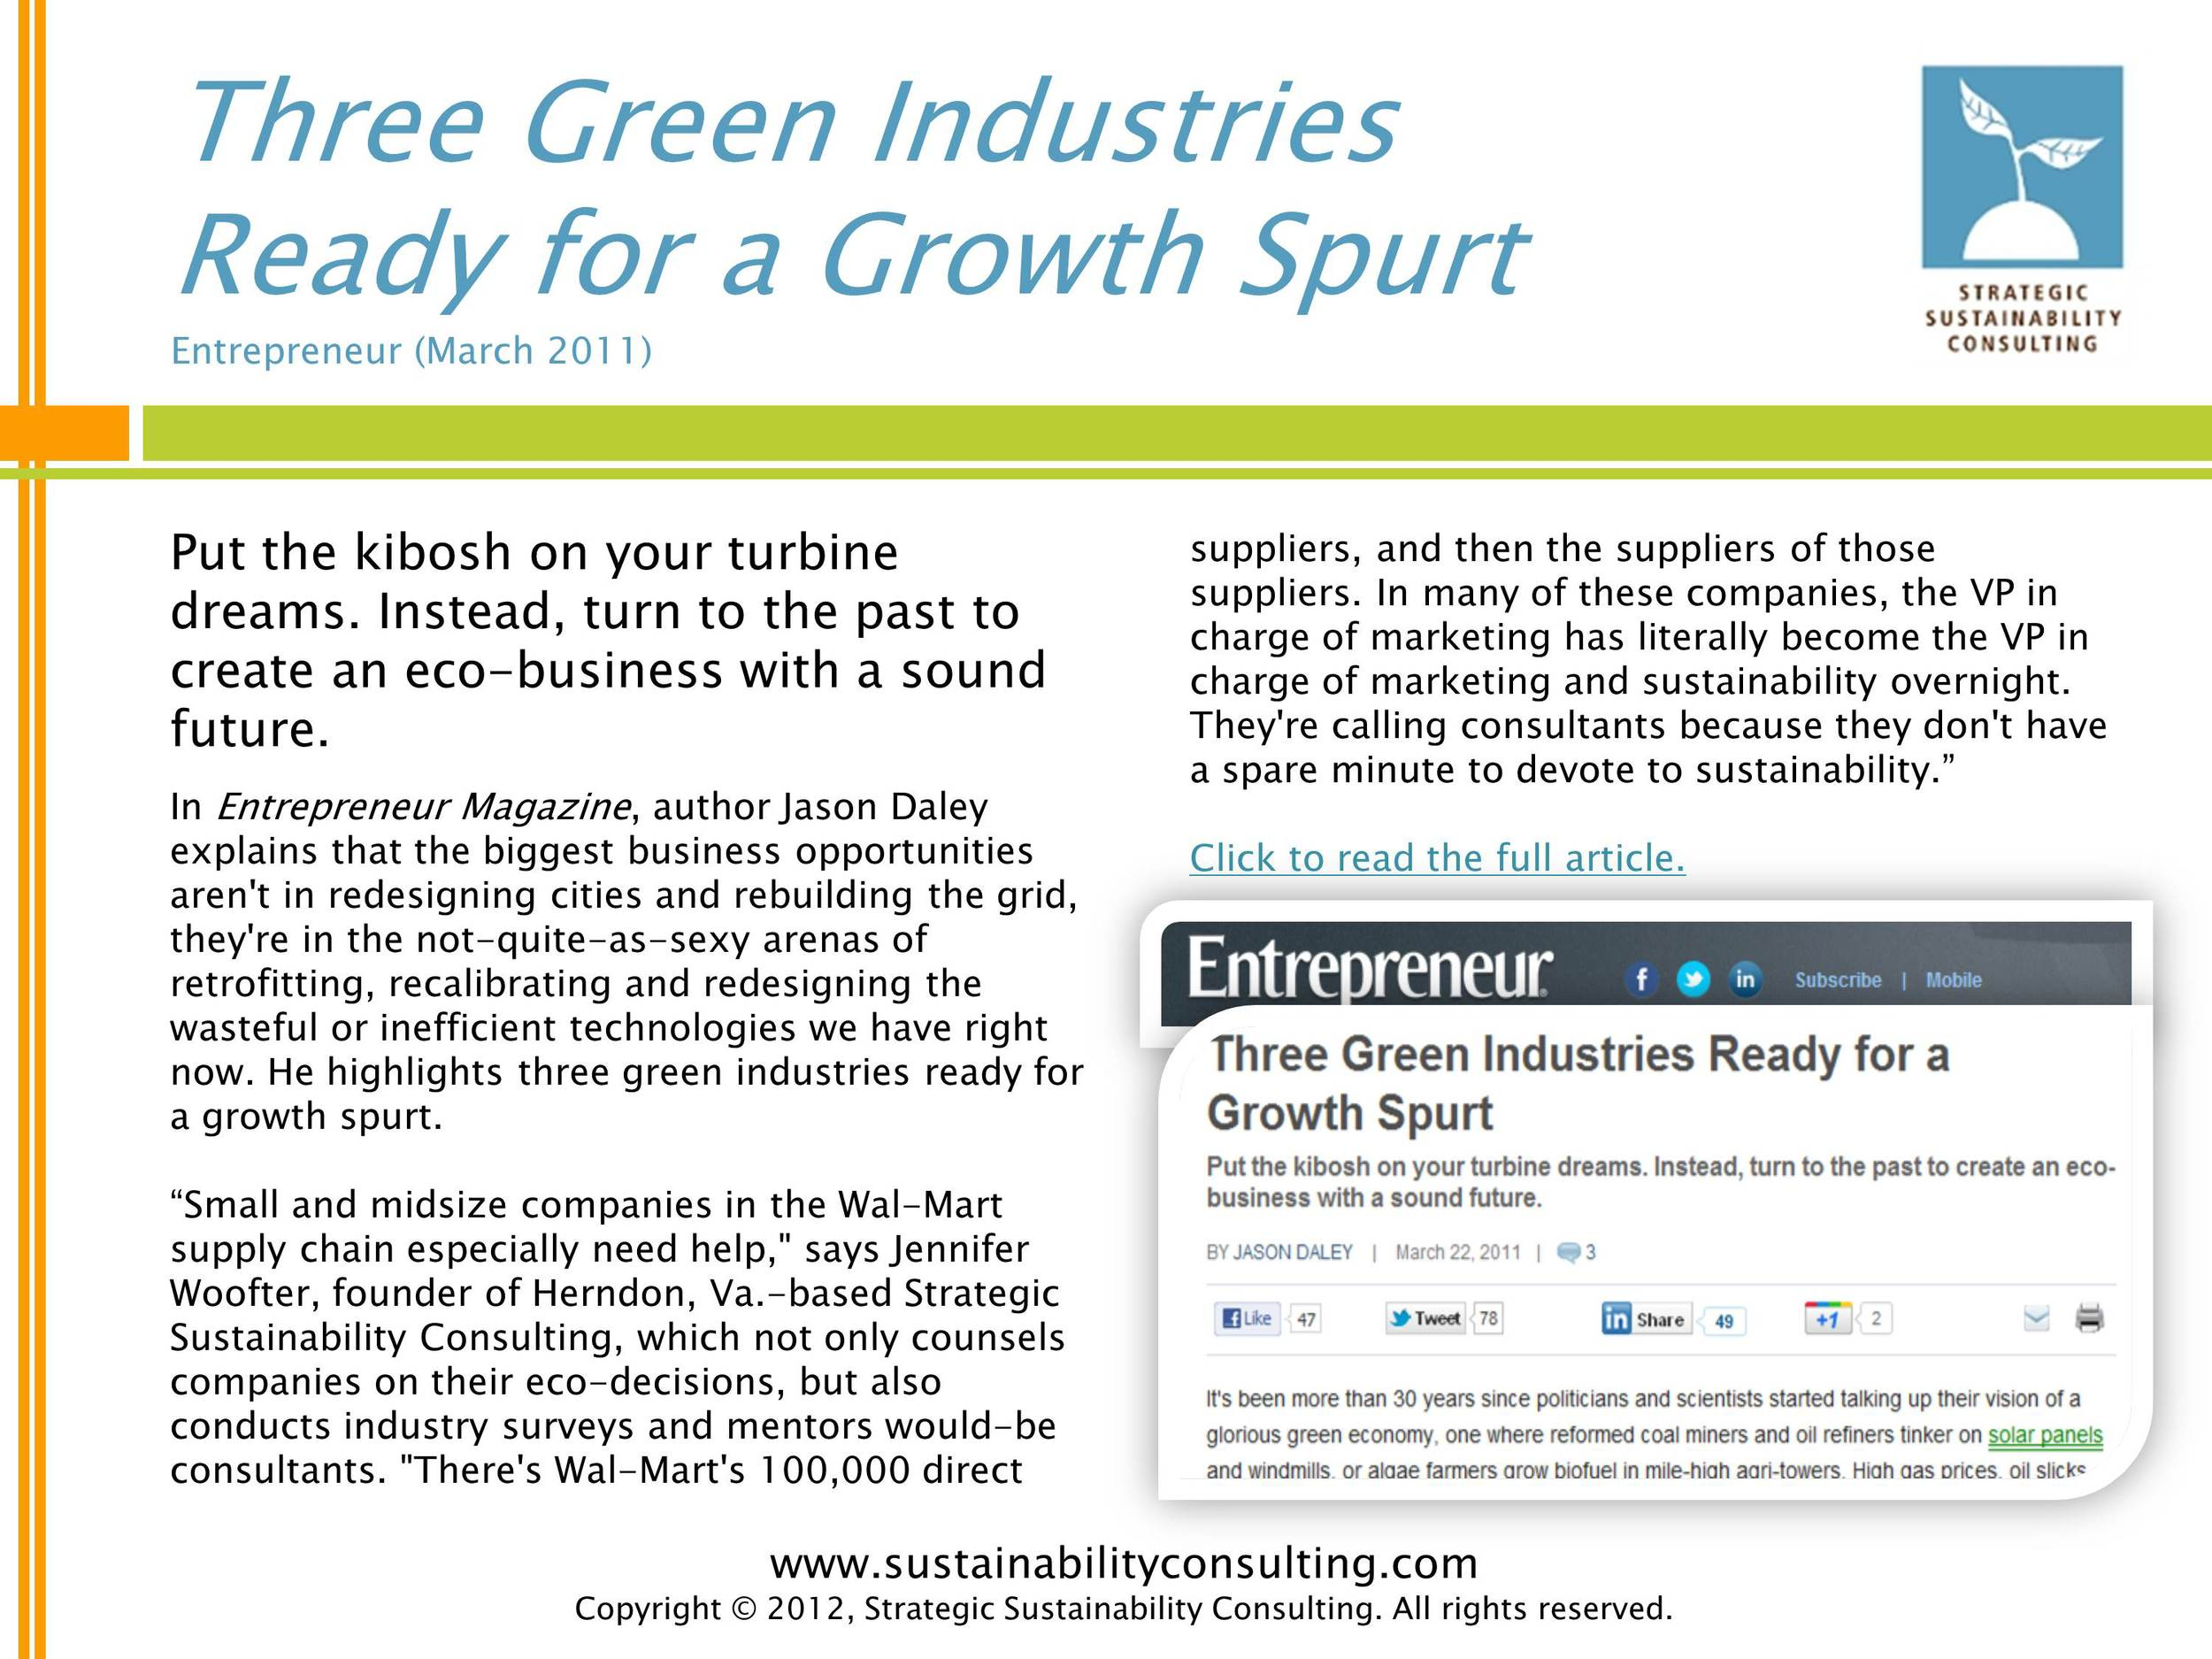 Three Green Industries Ready for a Growth Spurt